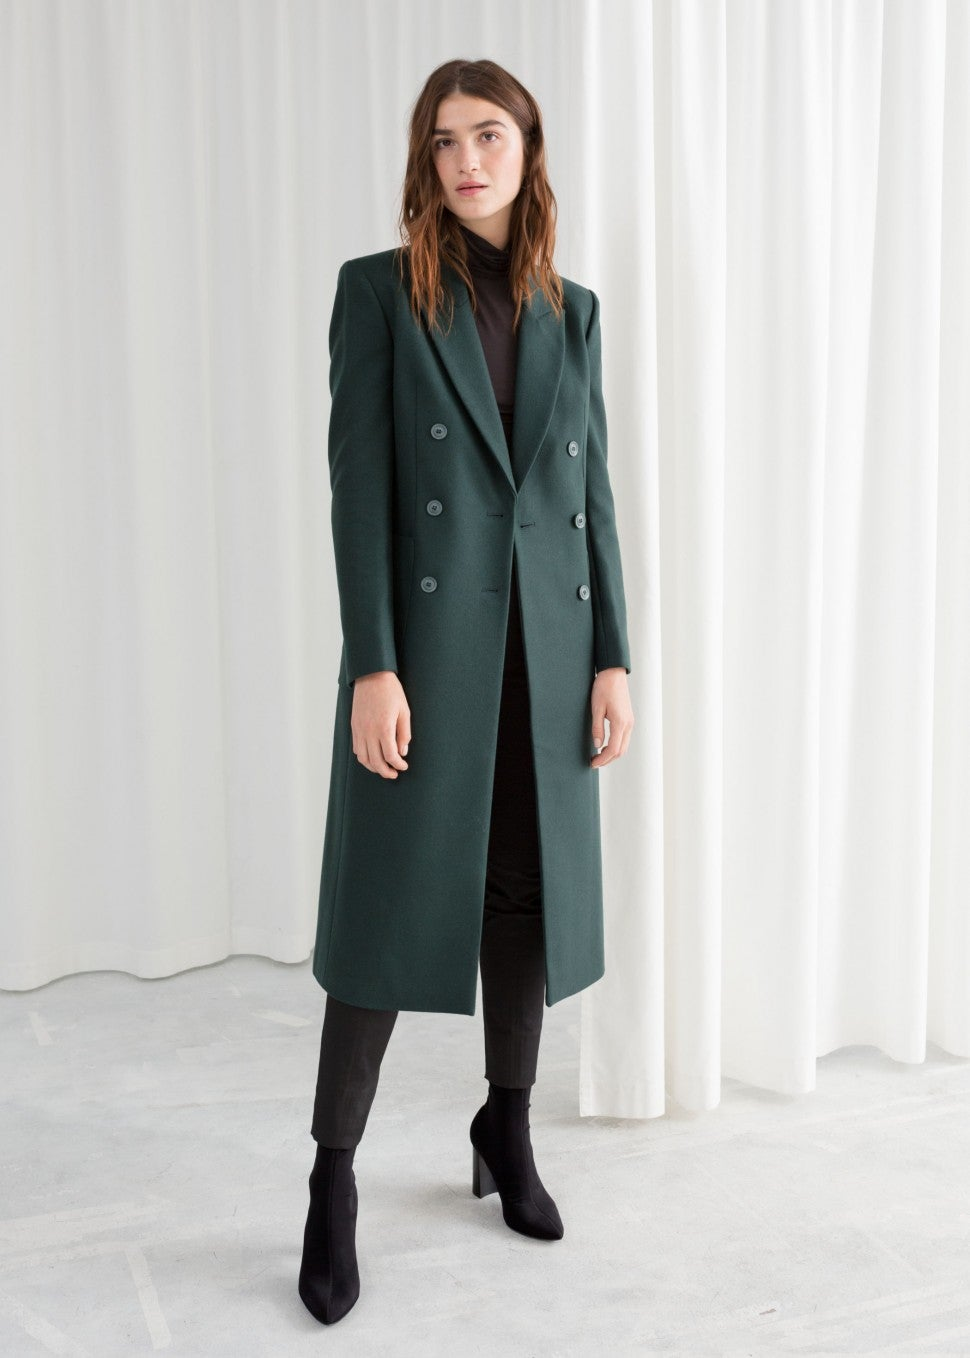 & Other Stories green coat